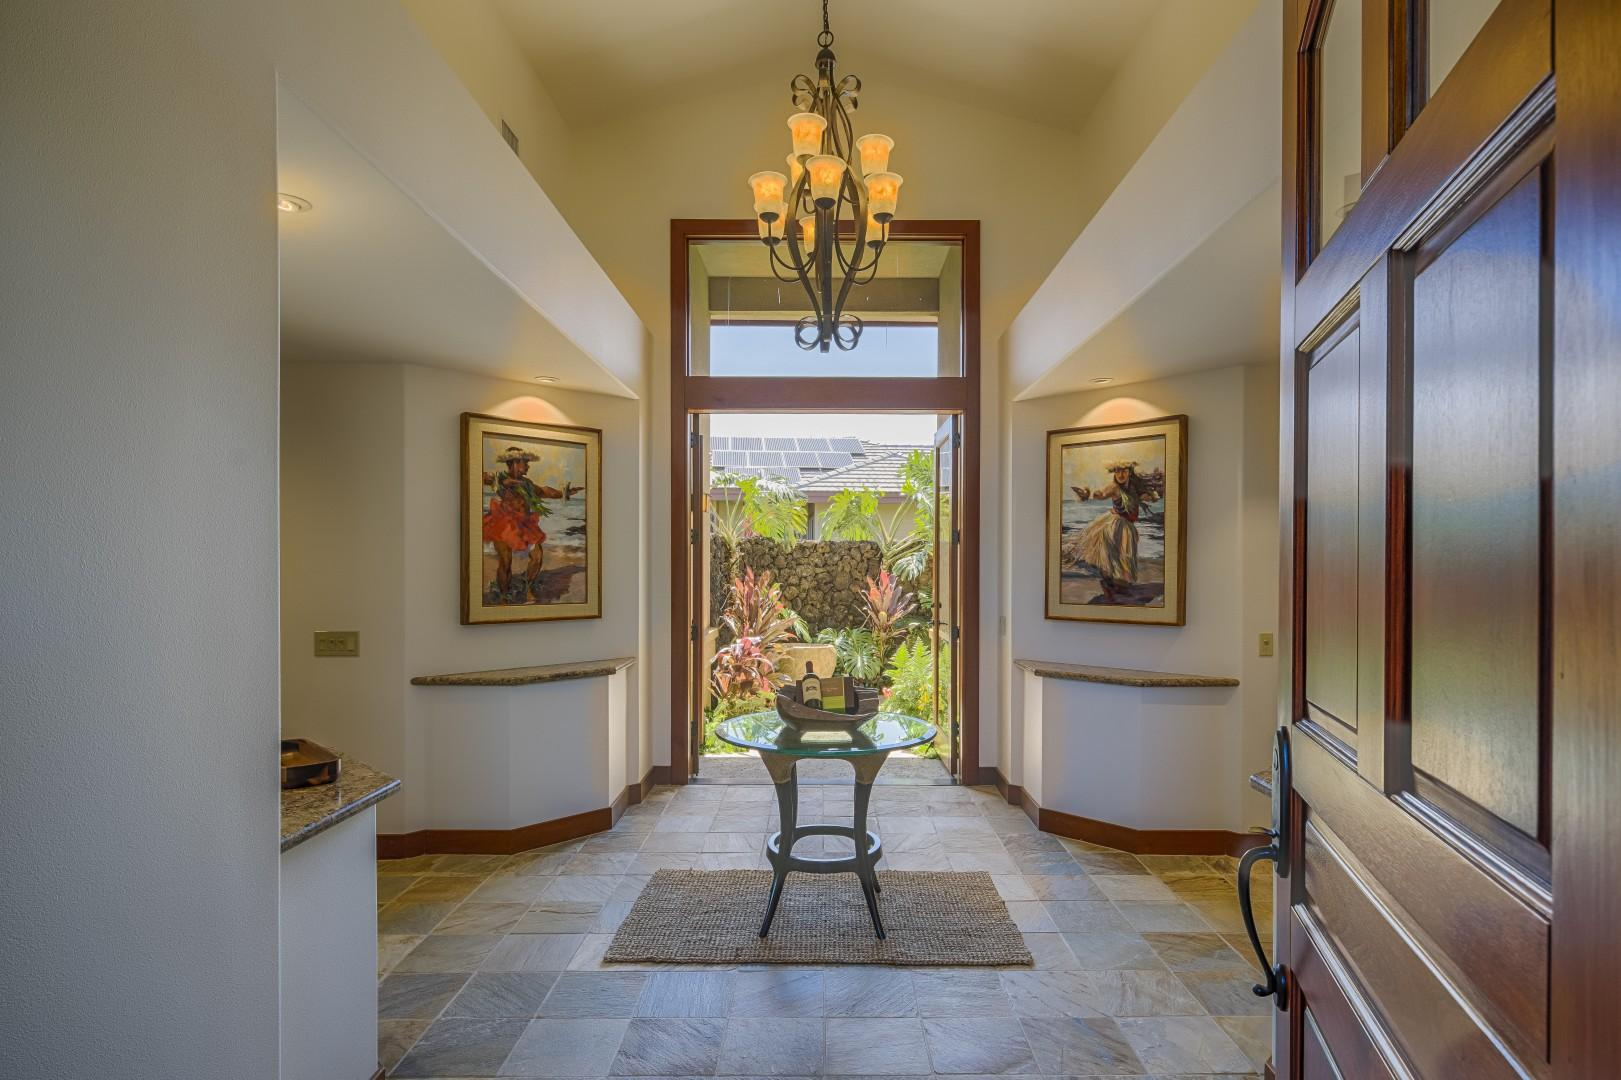 What an entry - enjoy the beautiful art in and around the home!